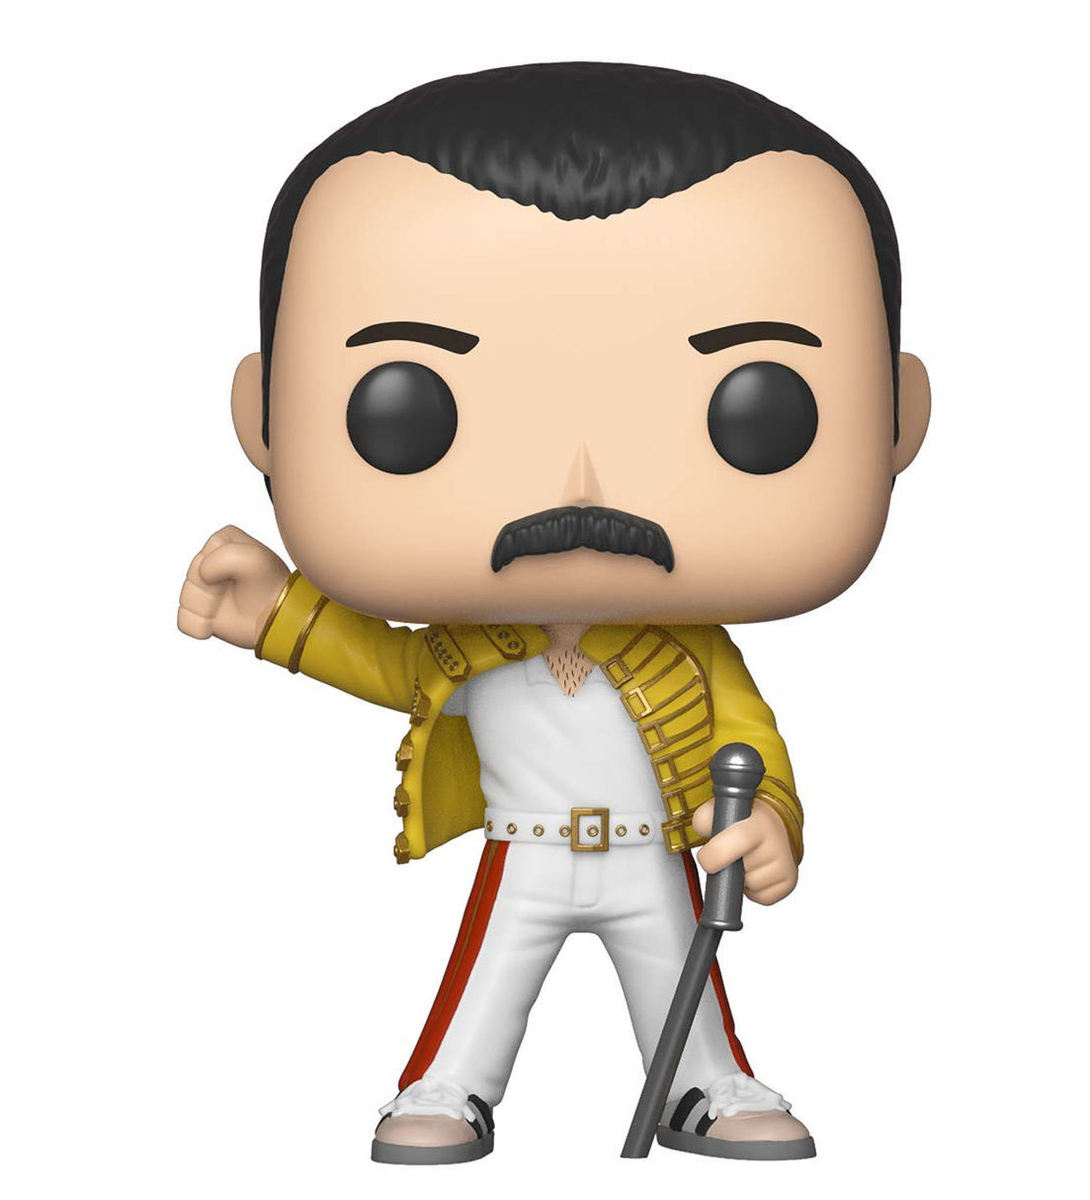 figurka Queen - POP! - Rocks - Freddie Mercury - Wembley 1986 - FK33732